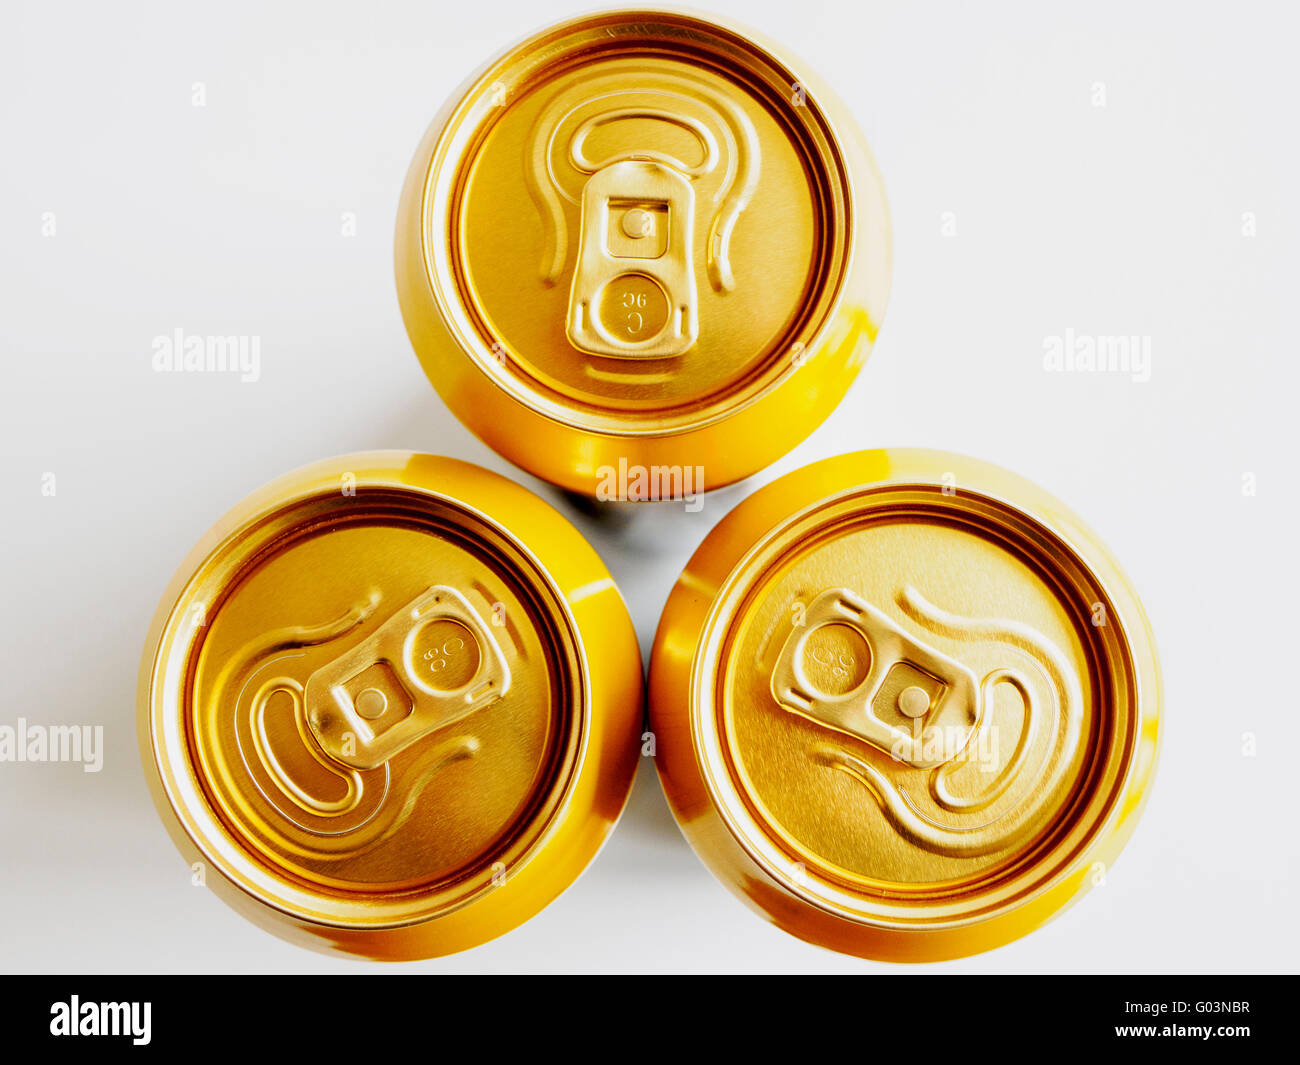 Three ring pull cans seen from above showing the stay-tab opening mechanism - Stock Image